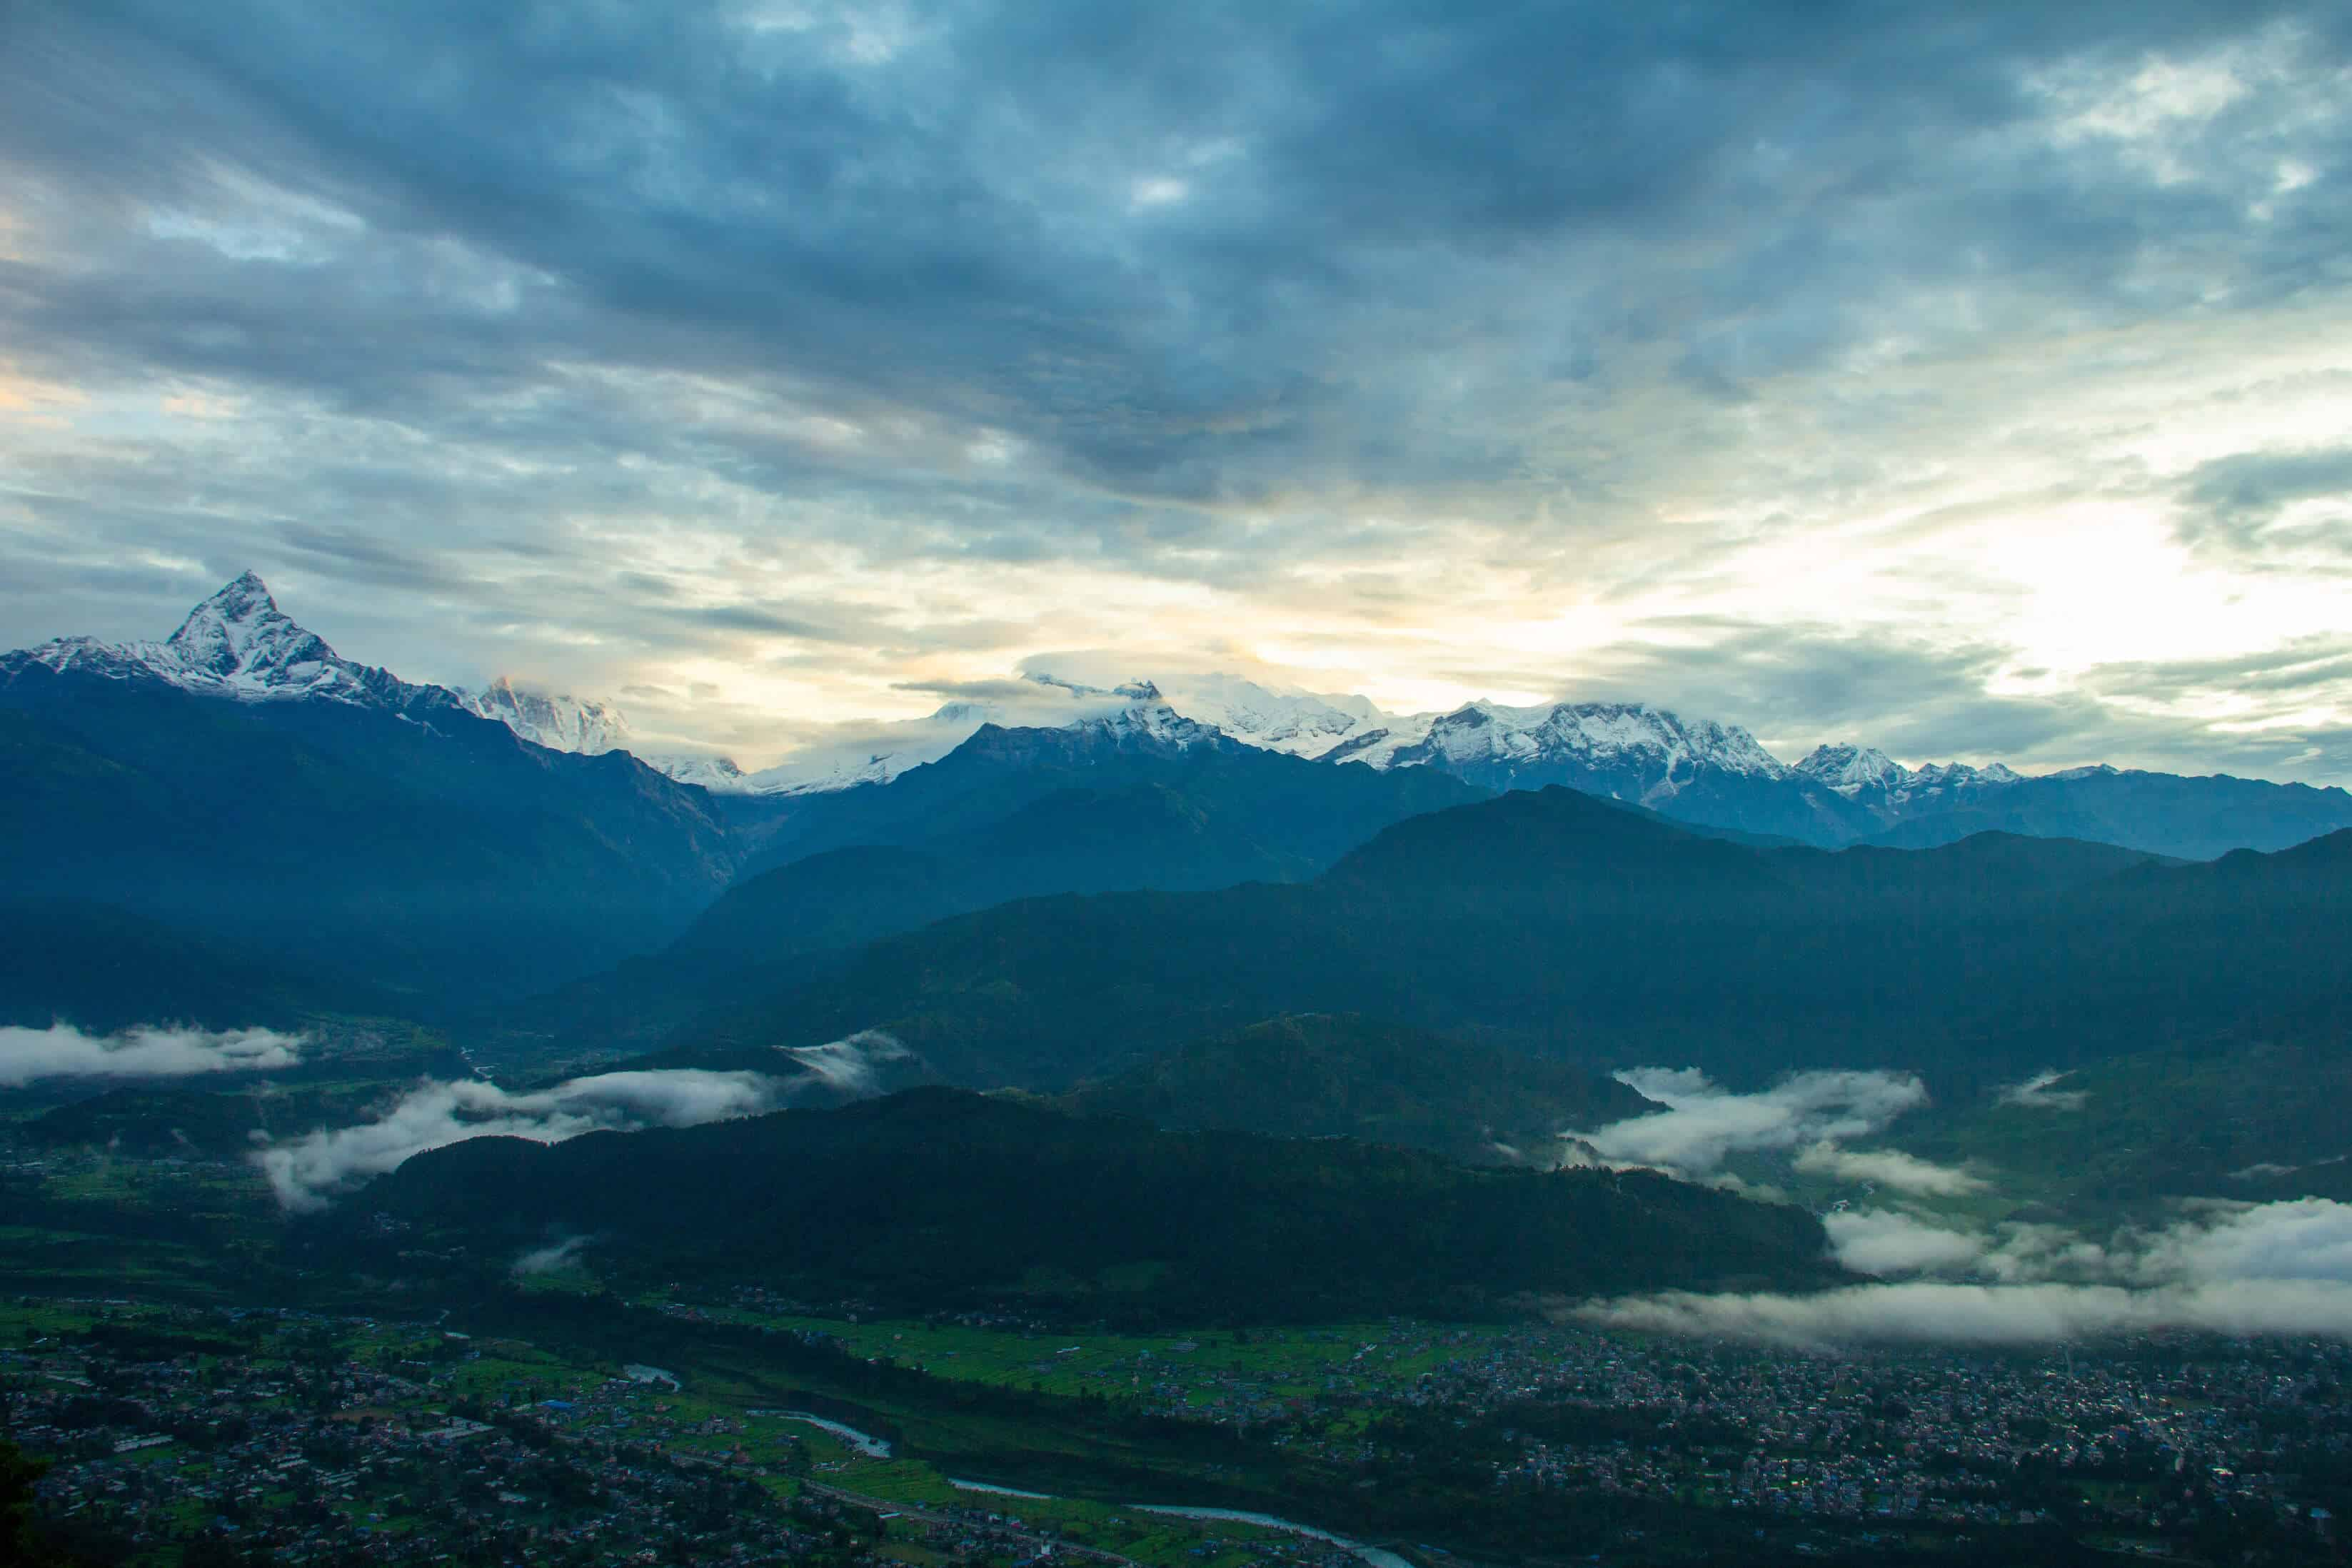 Snow-cupped mountains as backdrop of Pokhara city below